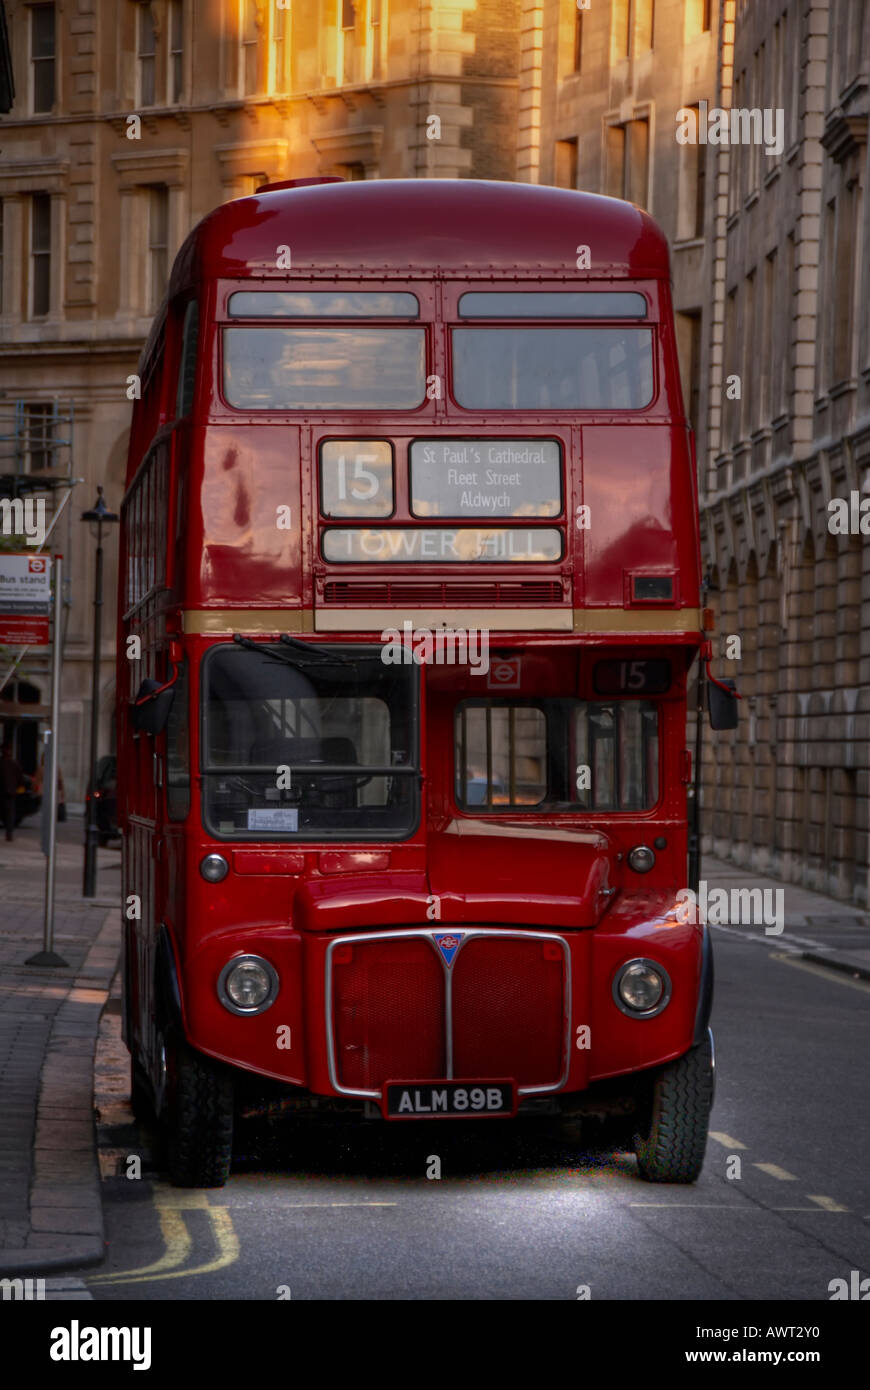 Red double decker Routemaster London bus - Stock Image